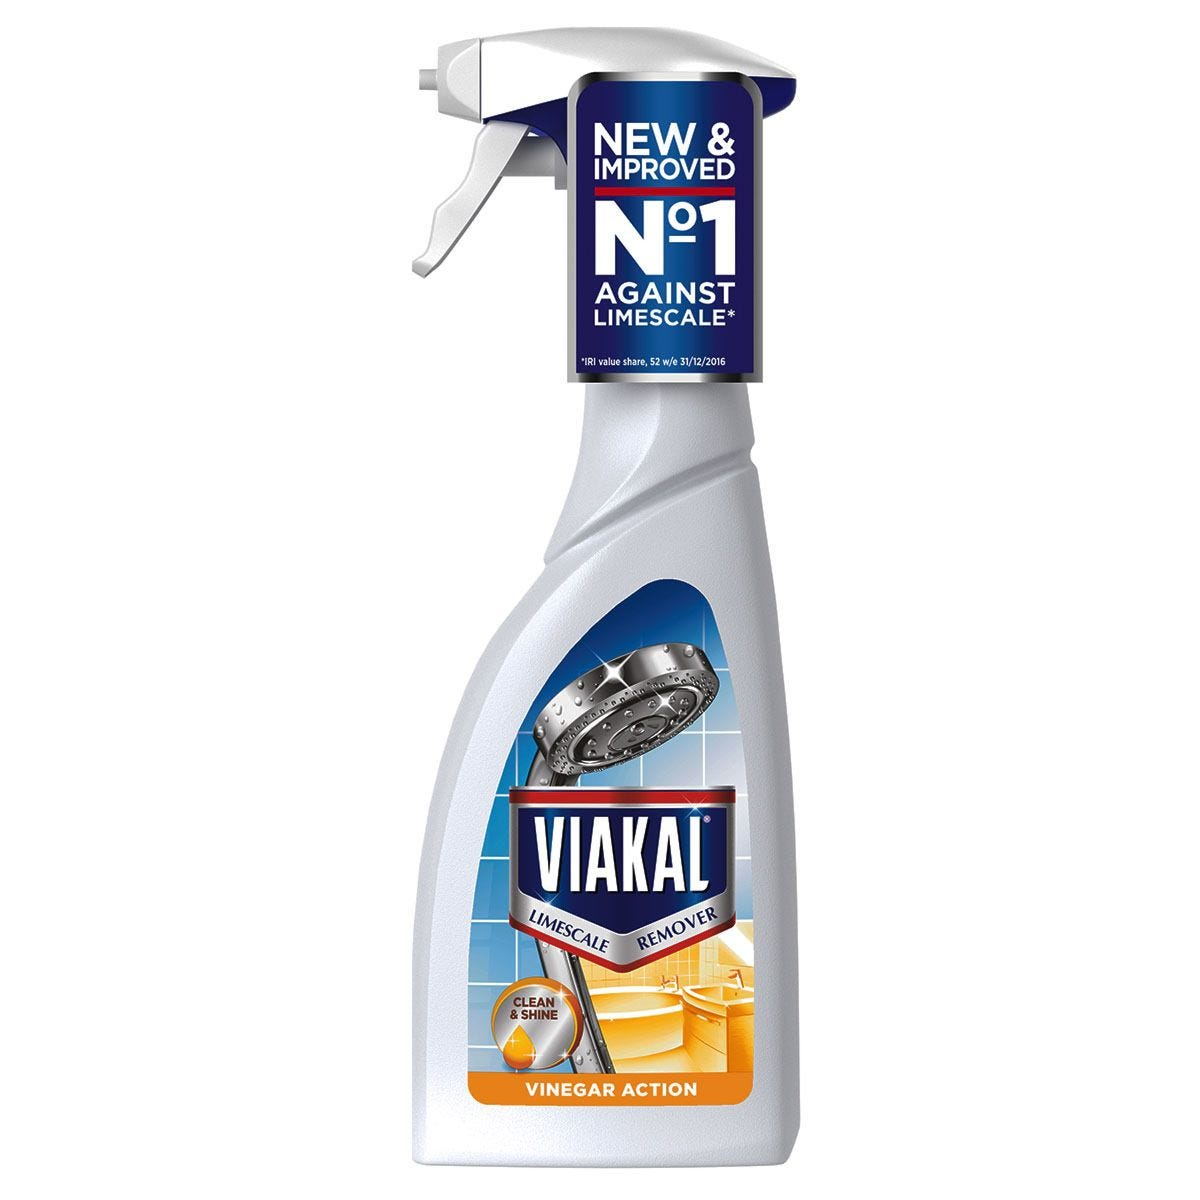 Viakal Vinegar Limescale Spray - 500ml